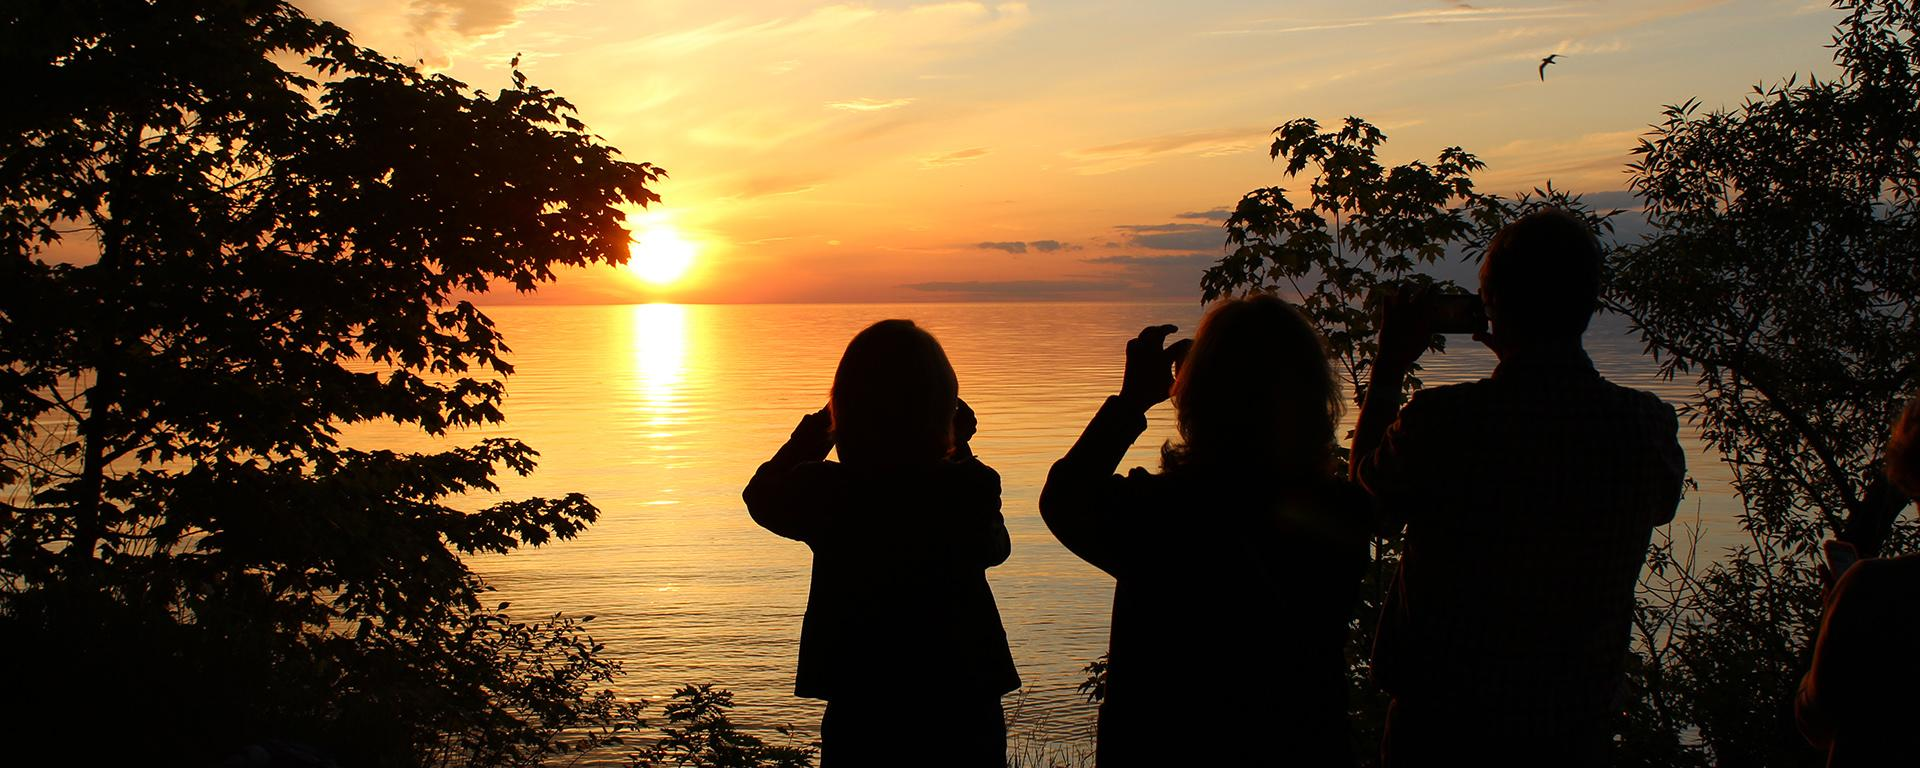 Alumni take photos of sunset over Lake Ontario